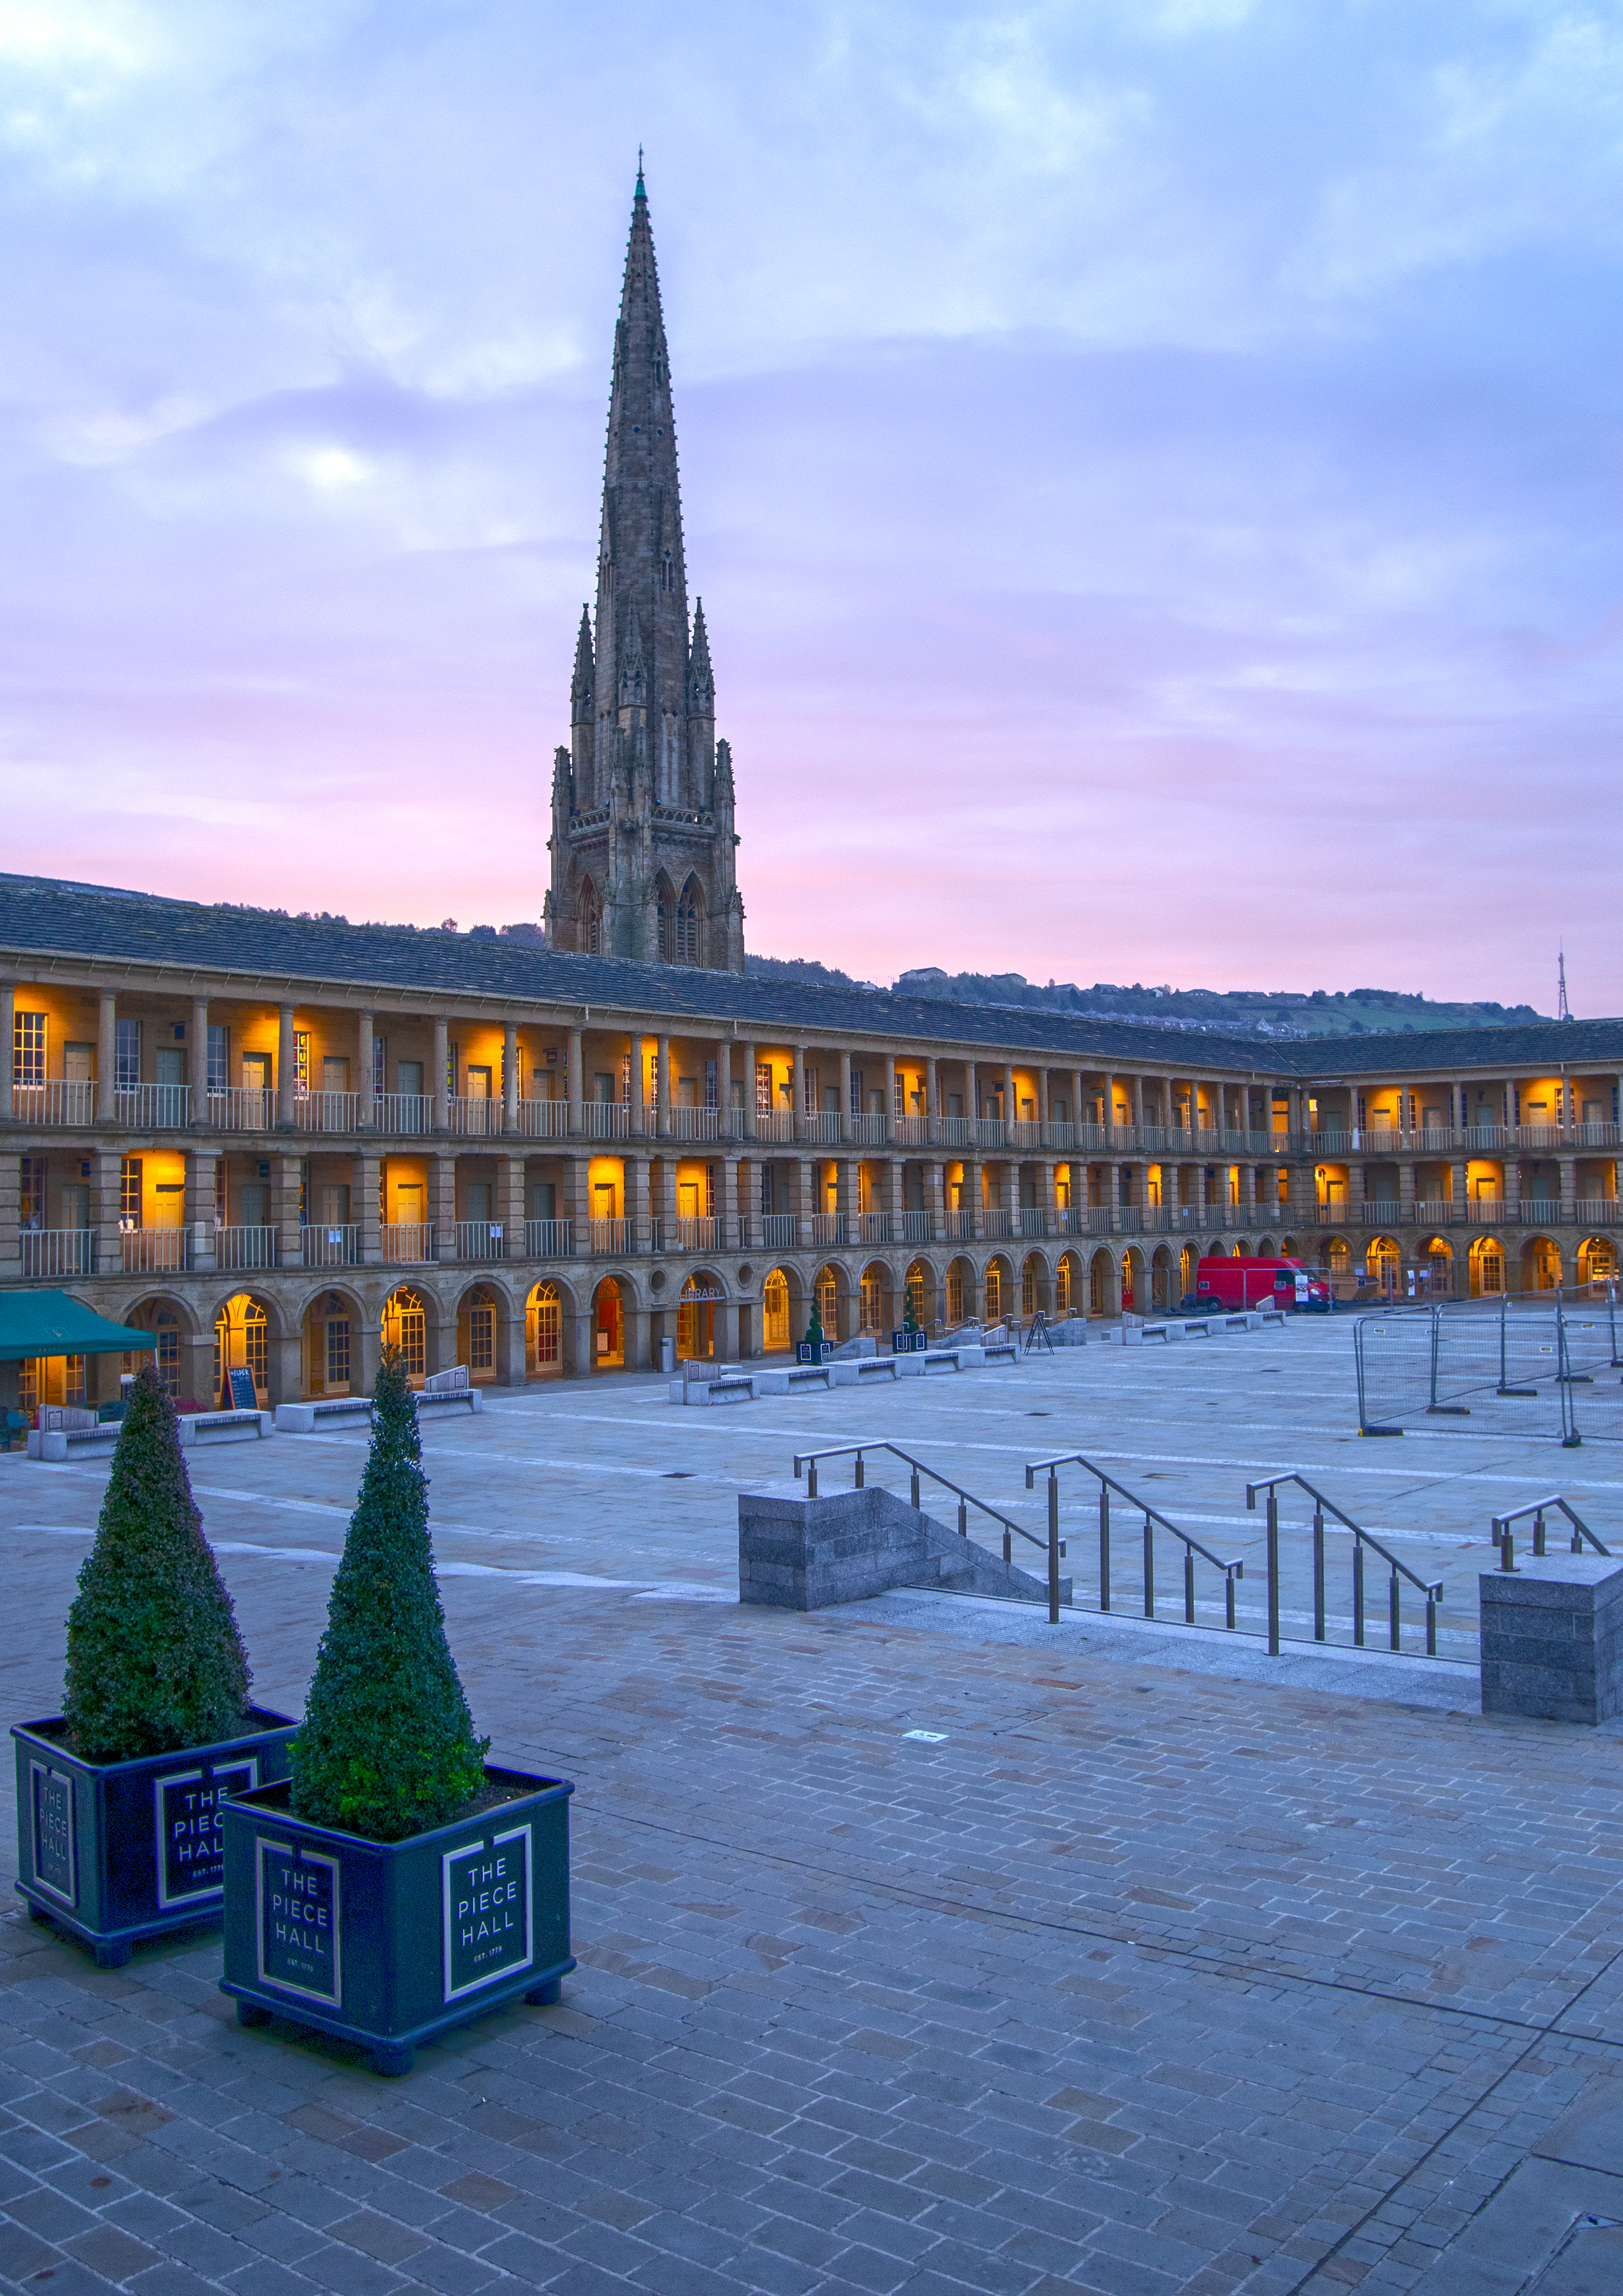 Square Church Spire and the Piece Hall, Halifax